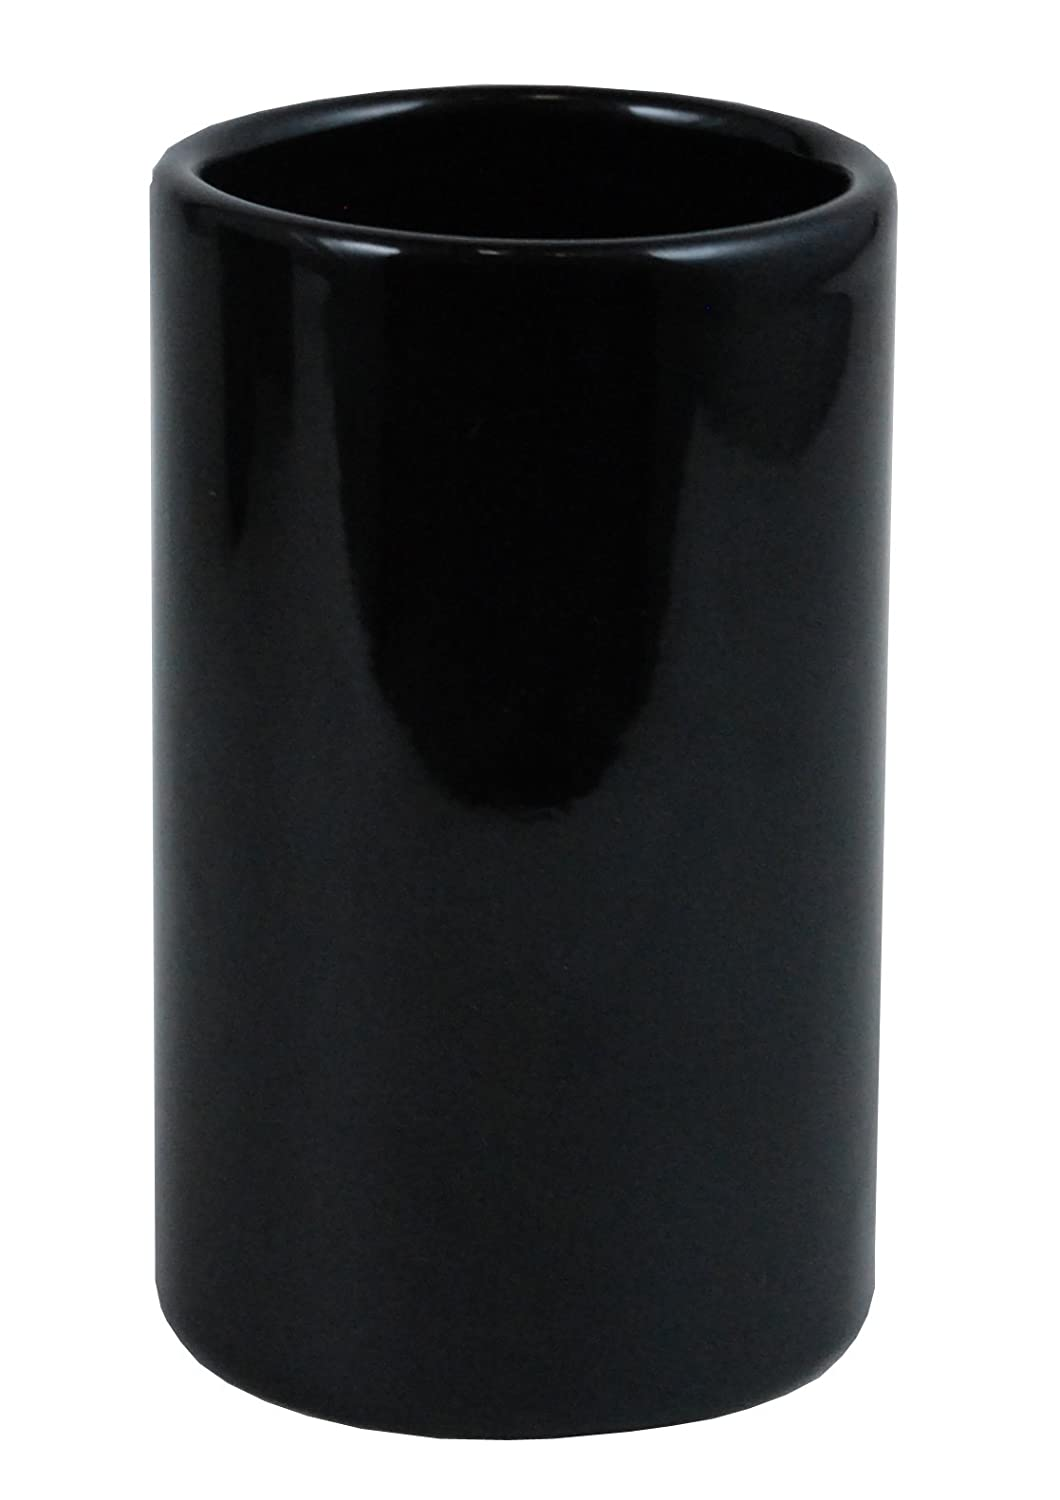 Kiera Grace Nova Ceramic Tumbler, Black Nexxt Design HO85137-6INT